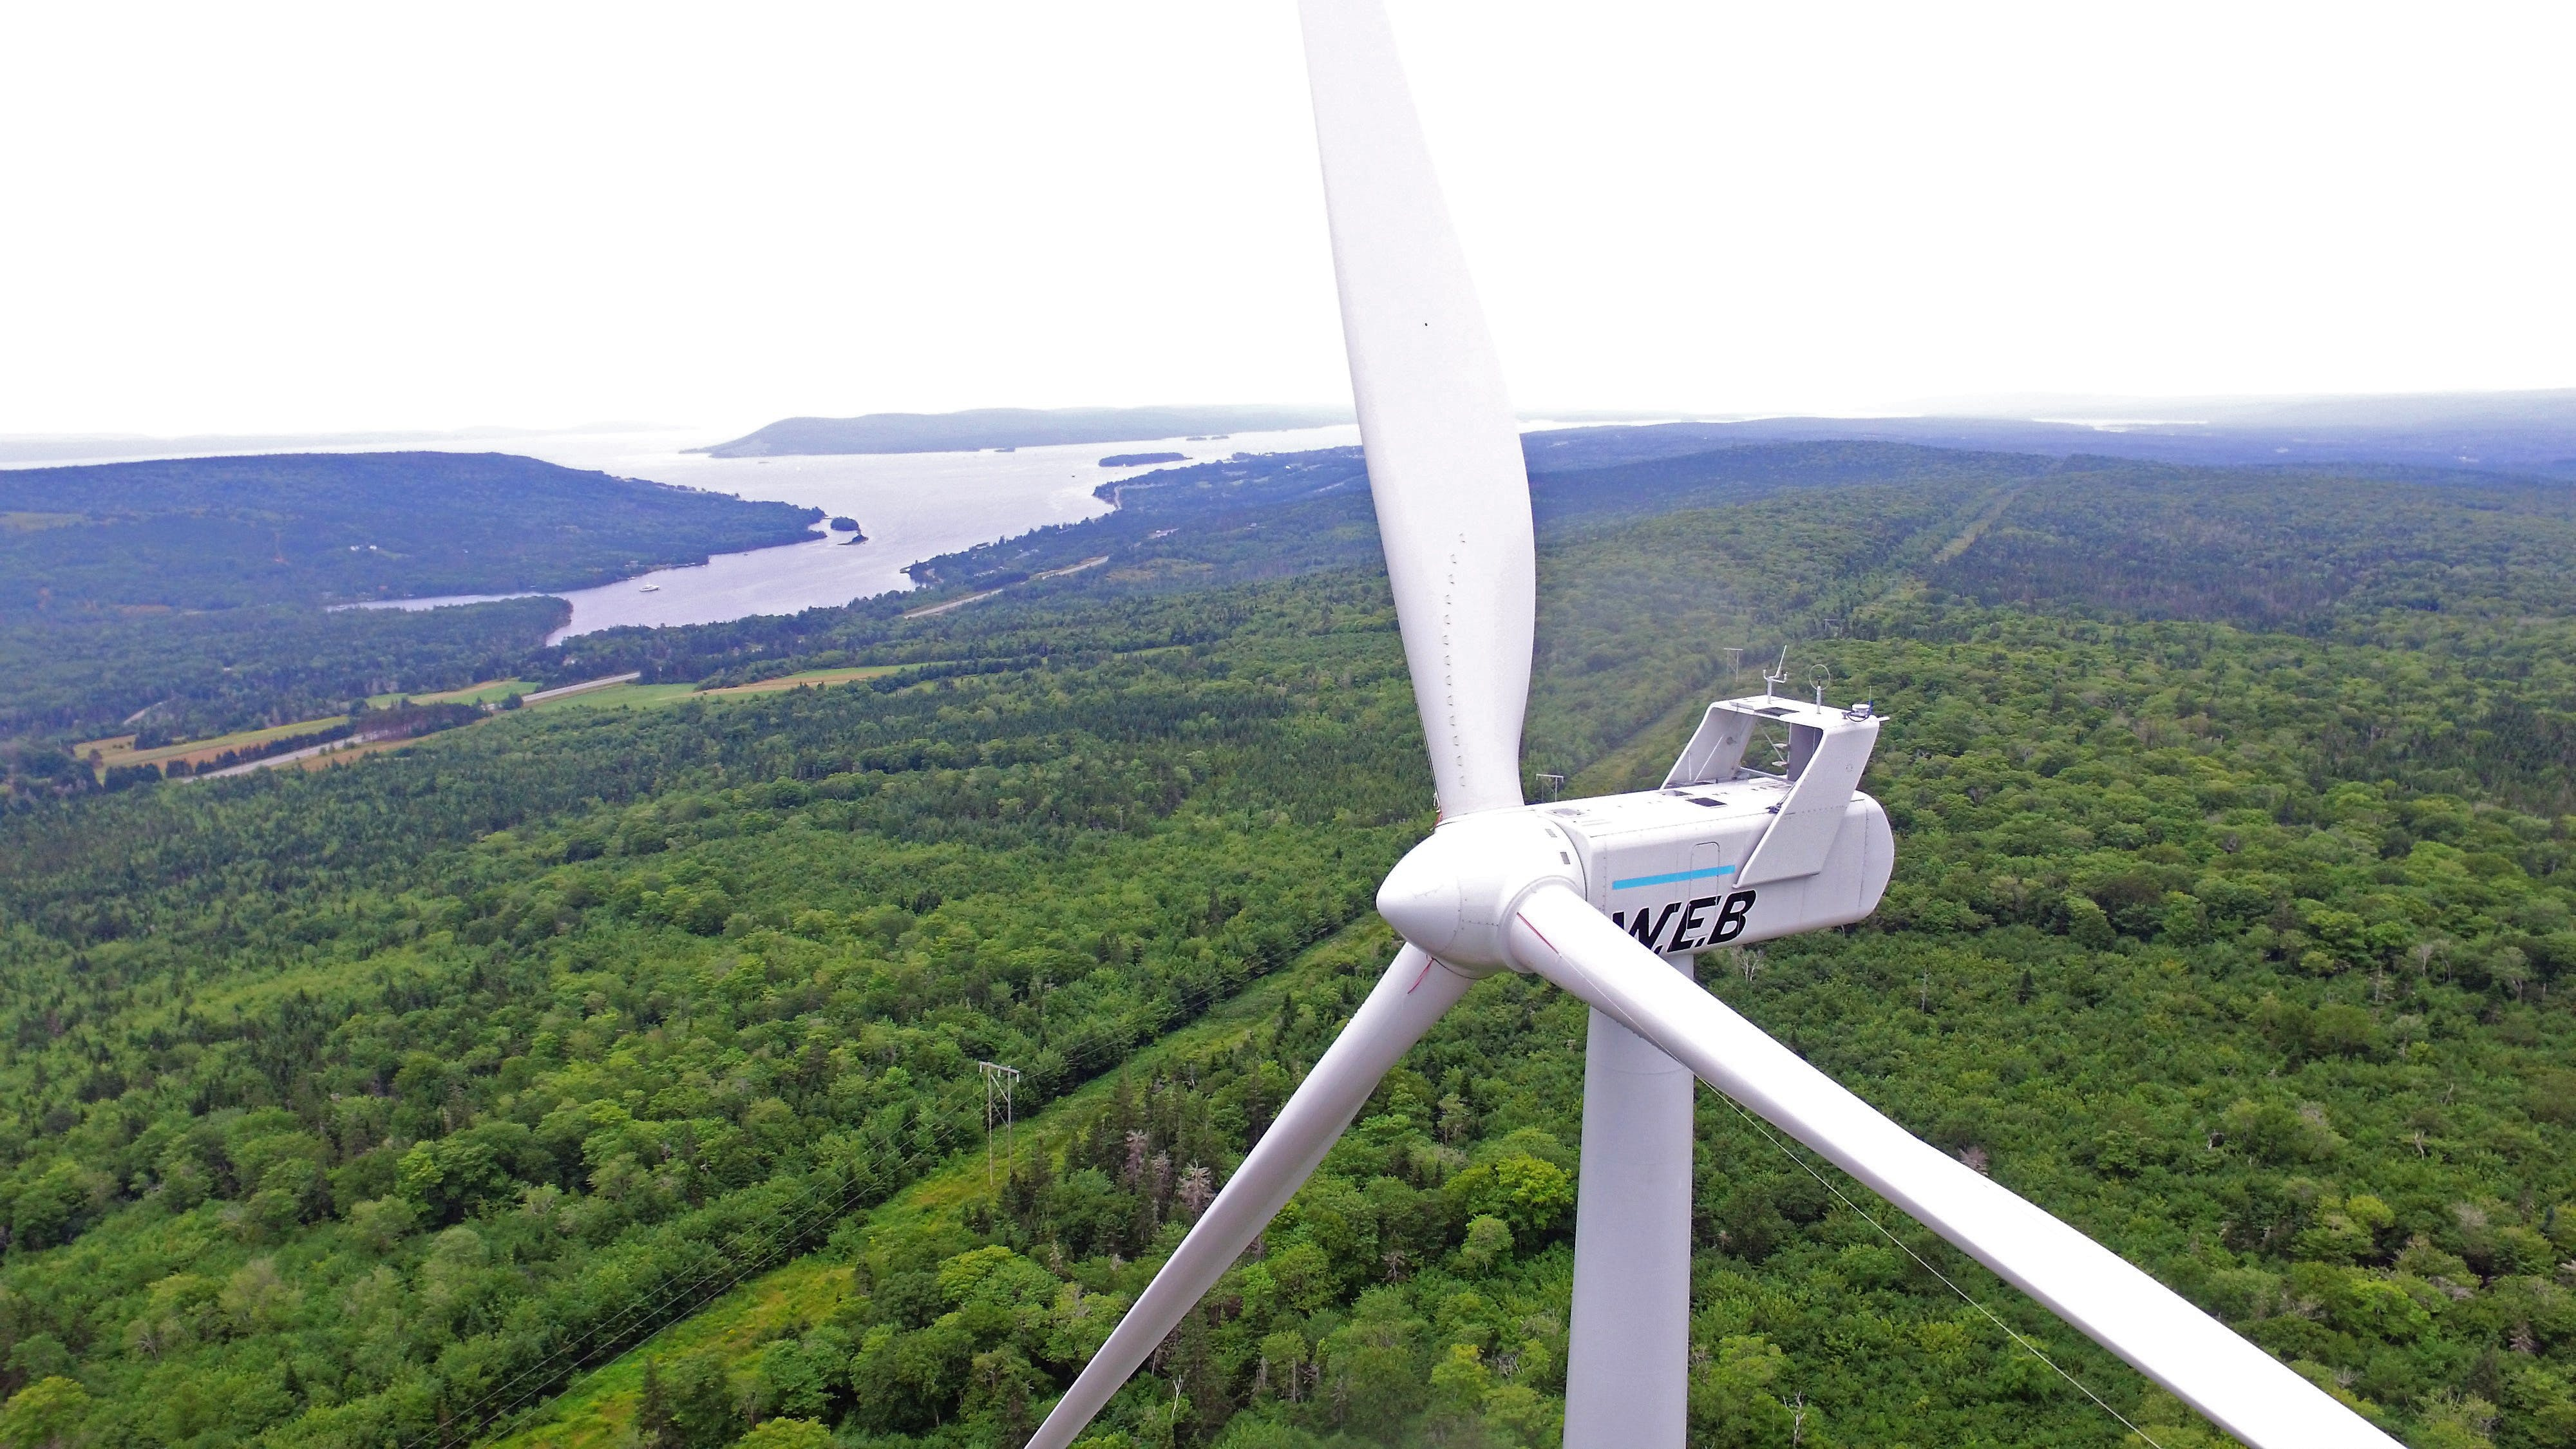 SWEB Development operates wind and solar projects in the US, New Brunswick and Nova Scotia, similar to the single turbine project in Baddeck.